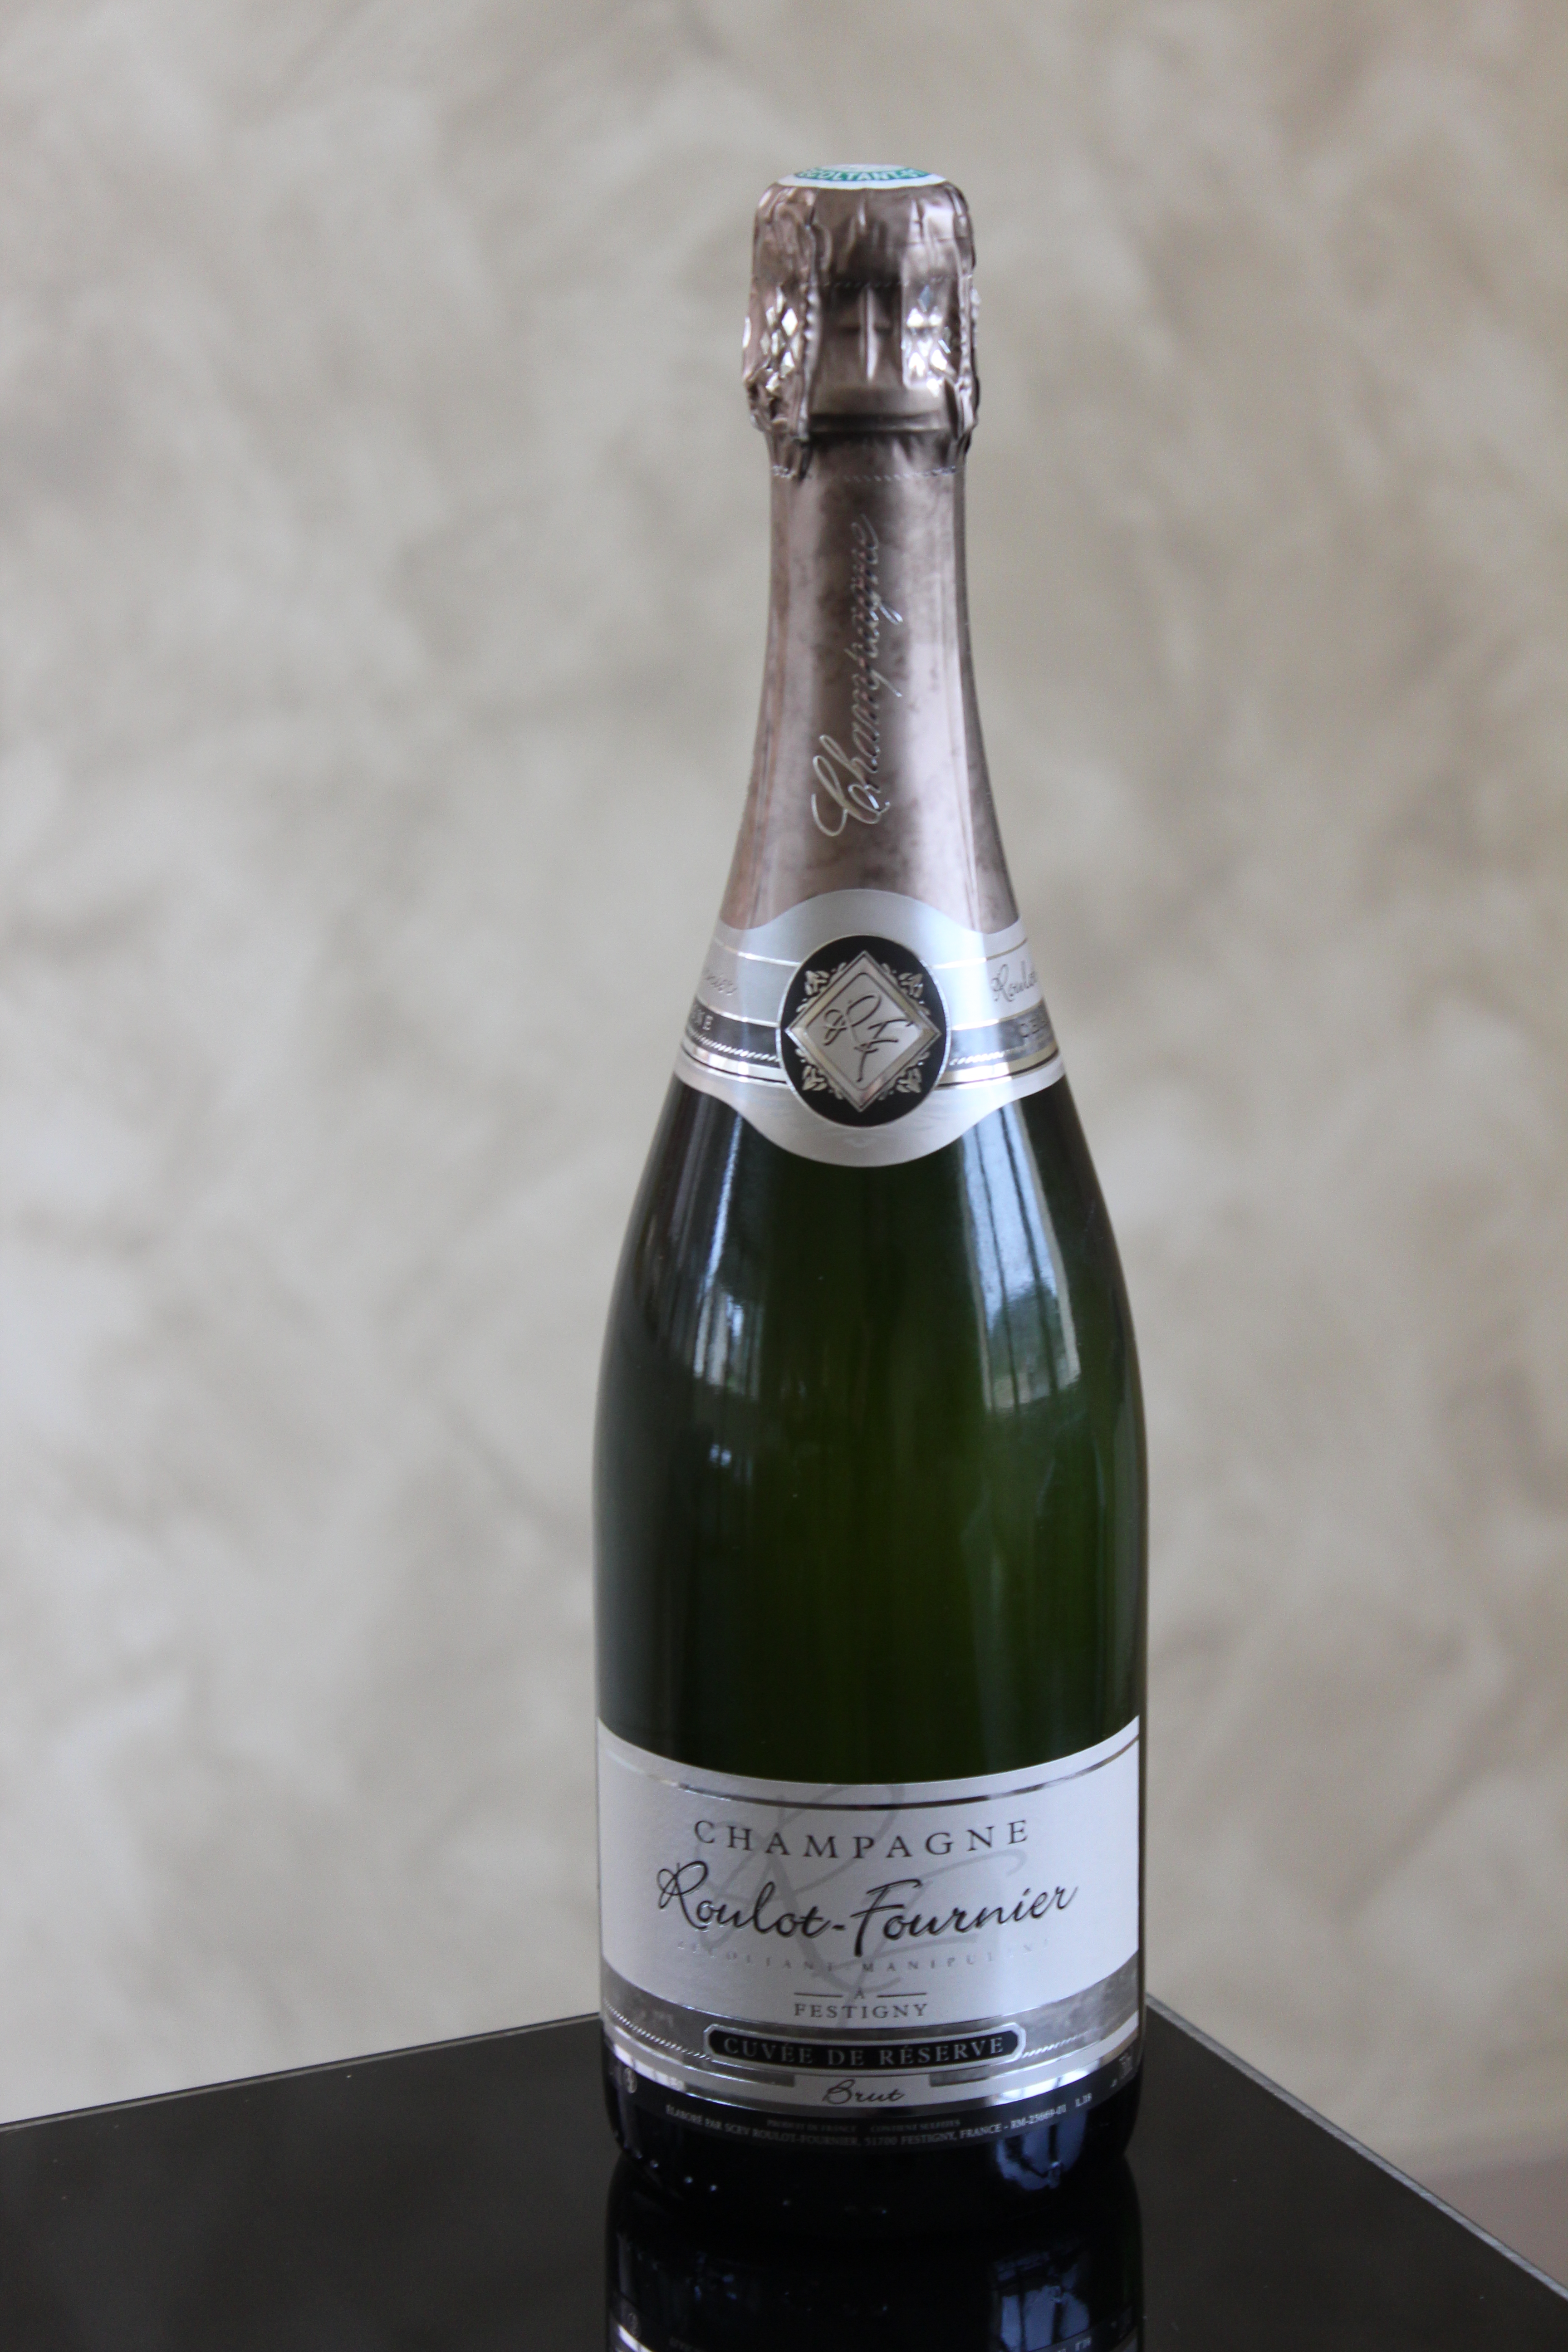 8f6c5618027c58 Nos champagnes   Champagne Roulot-Fournier